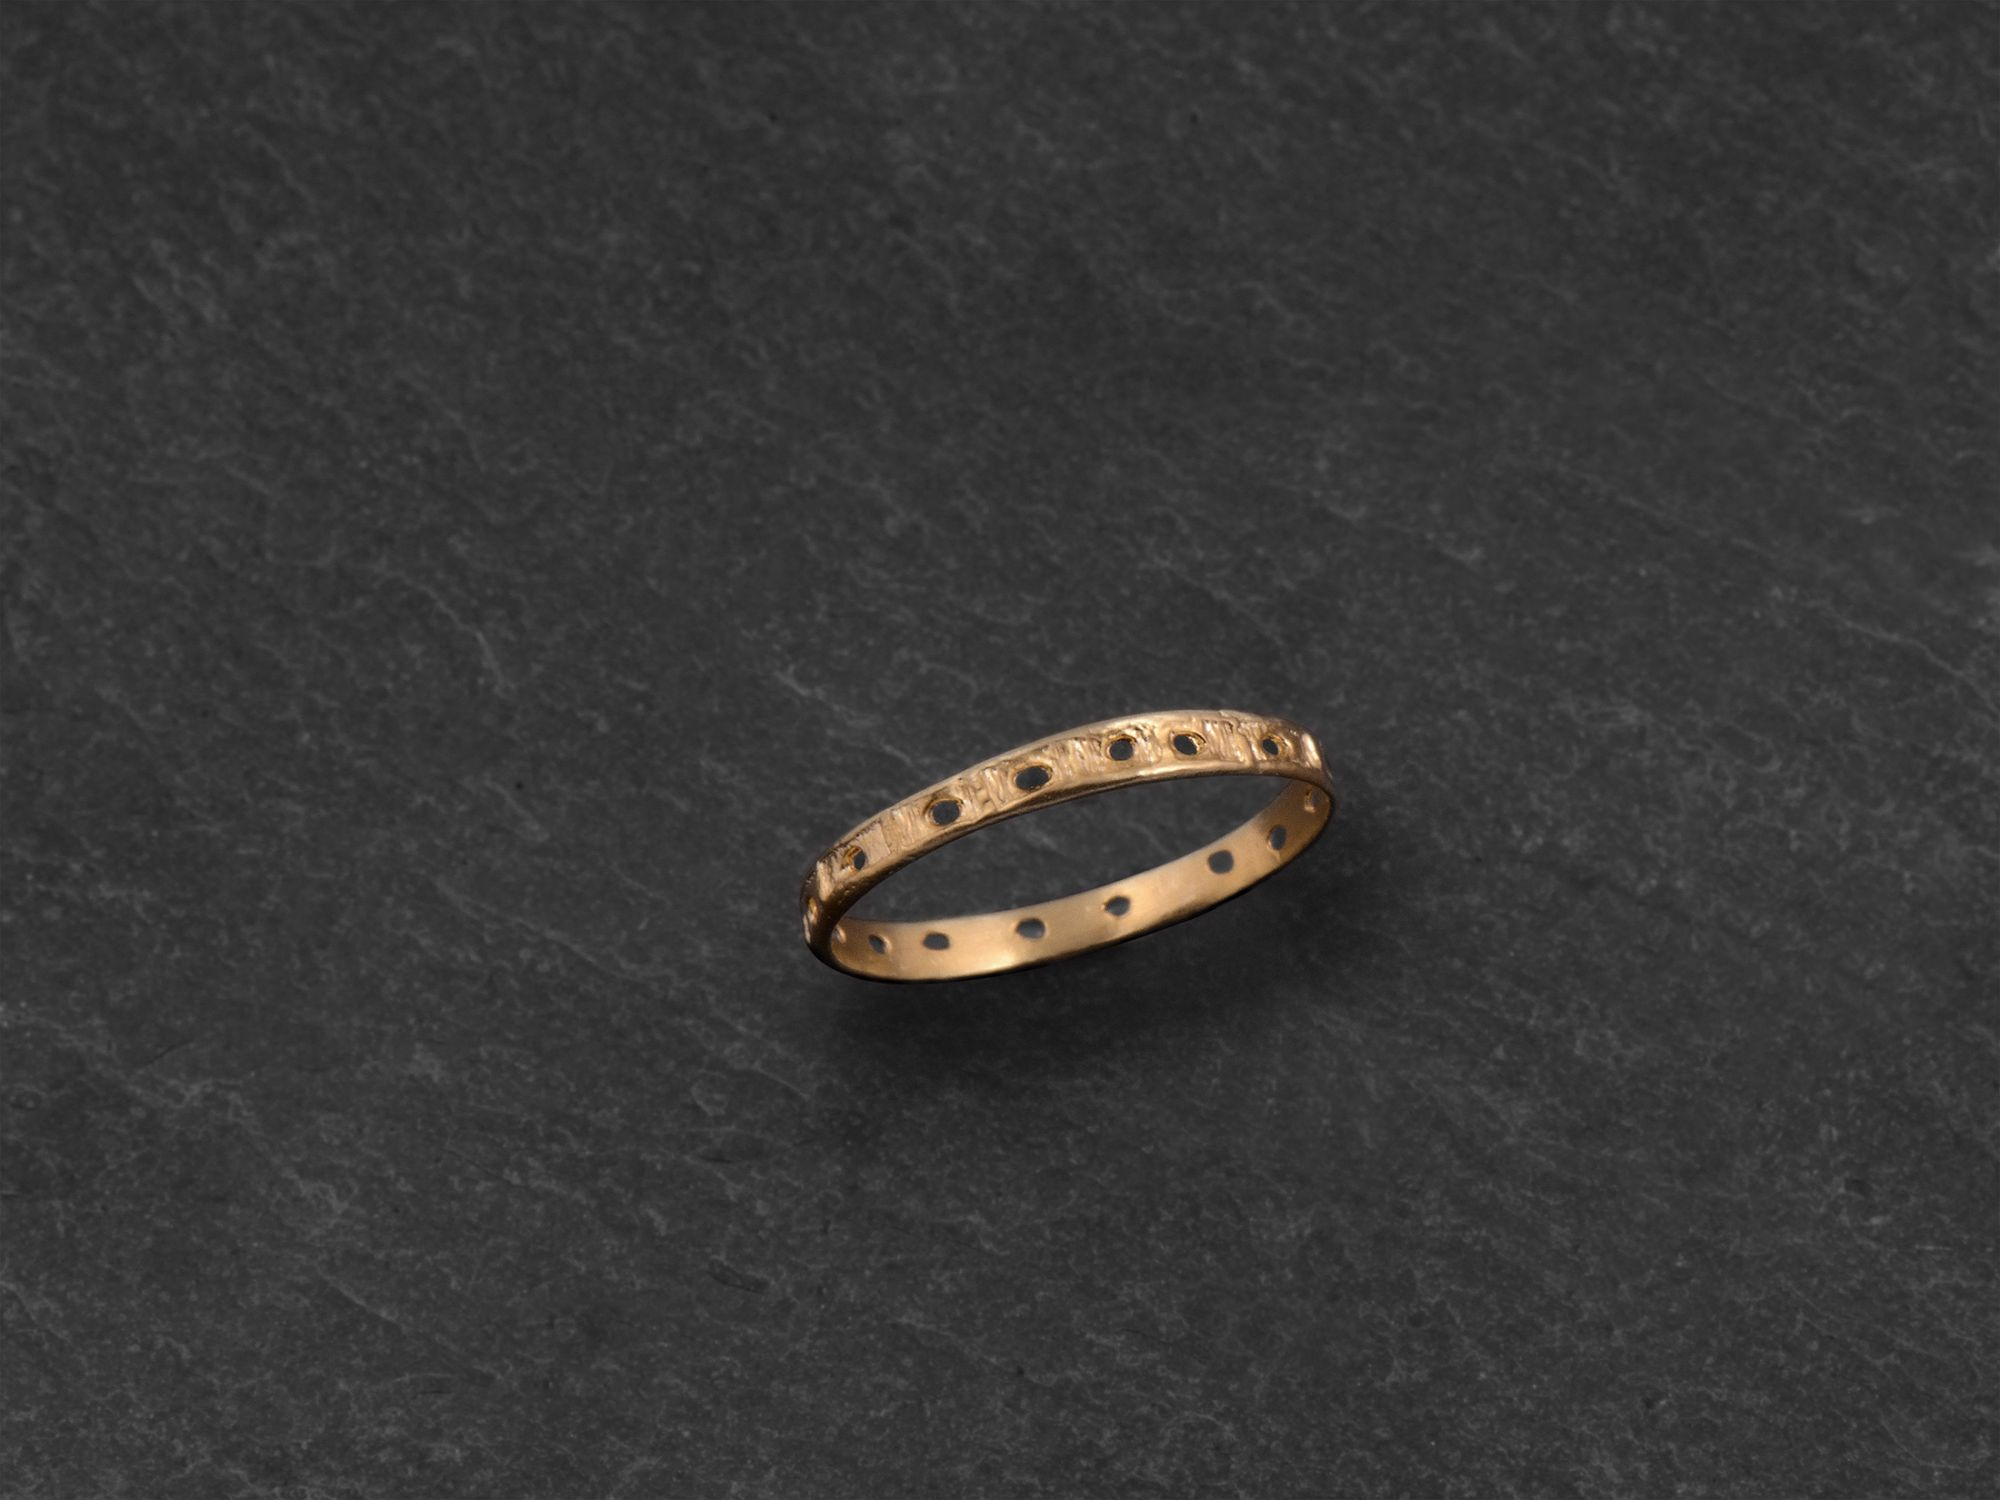 Minos vermeil perforated ring by Emmanuelle Zysman